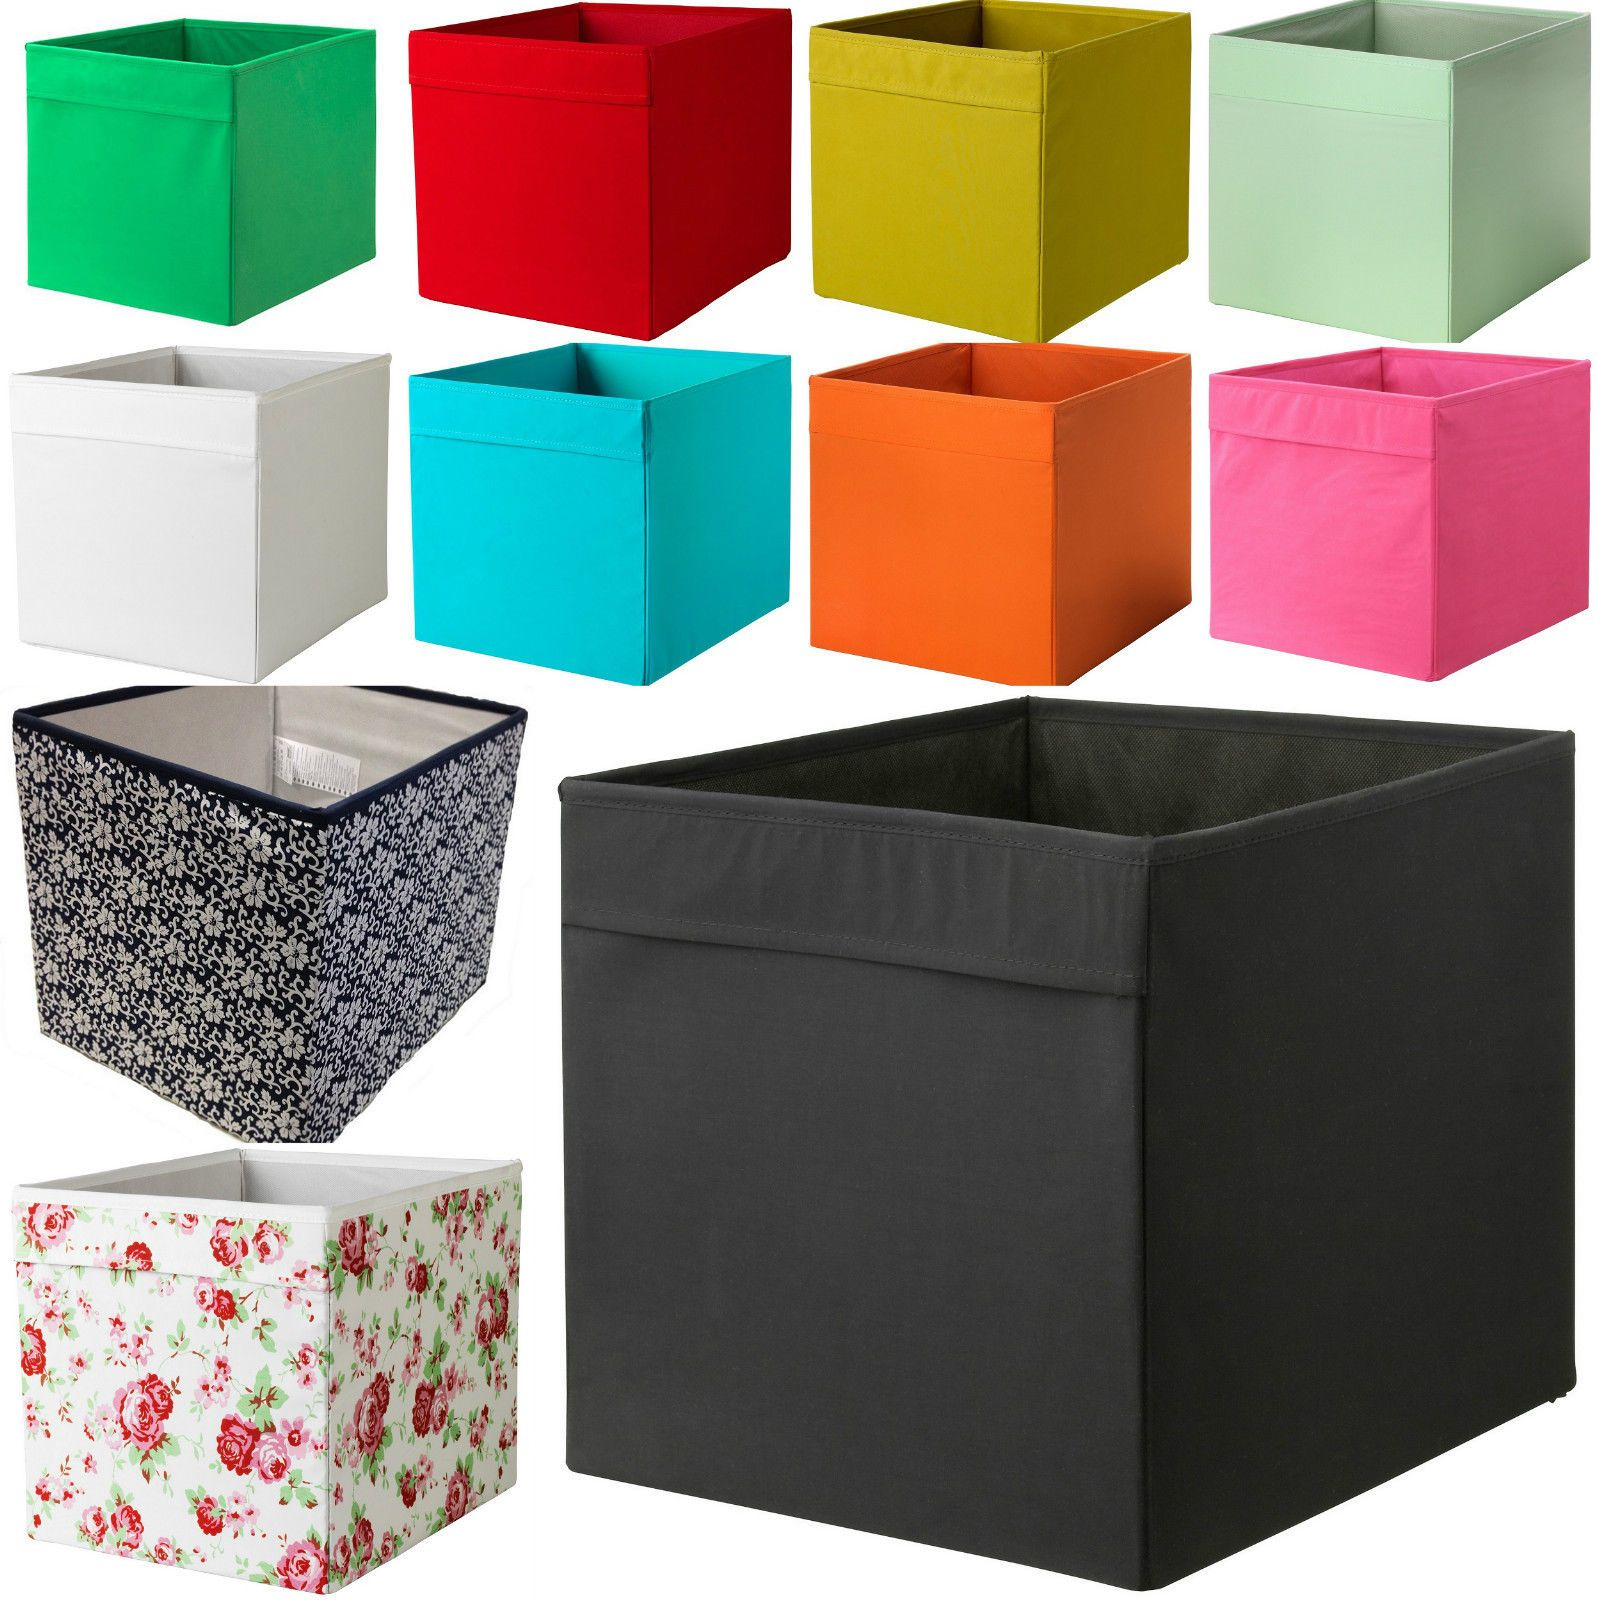 Aufbewahrungsbox Ikea Expedit New Ikea Drona Fabric Storage Box Basket For Expedit Kallax Shelf